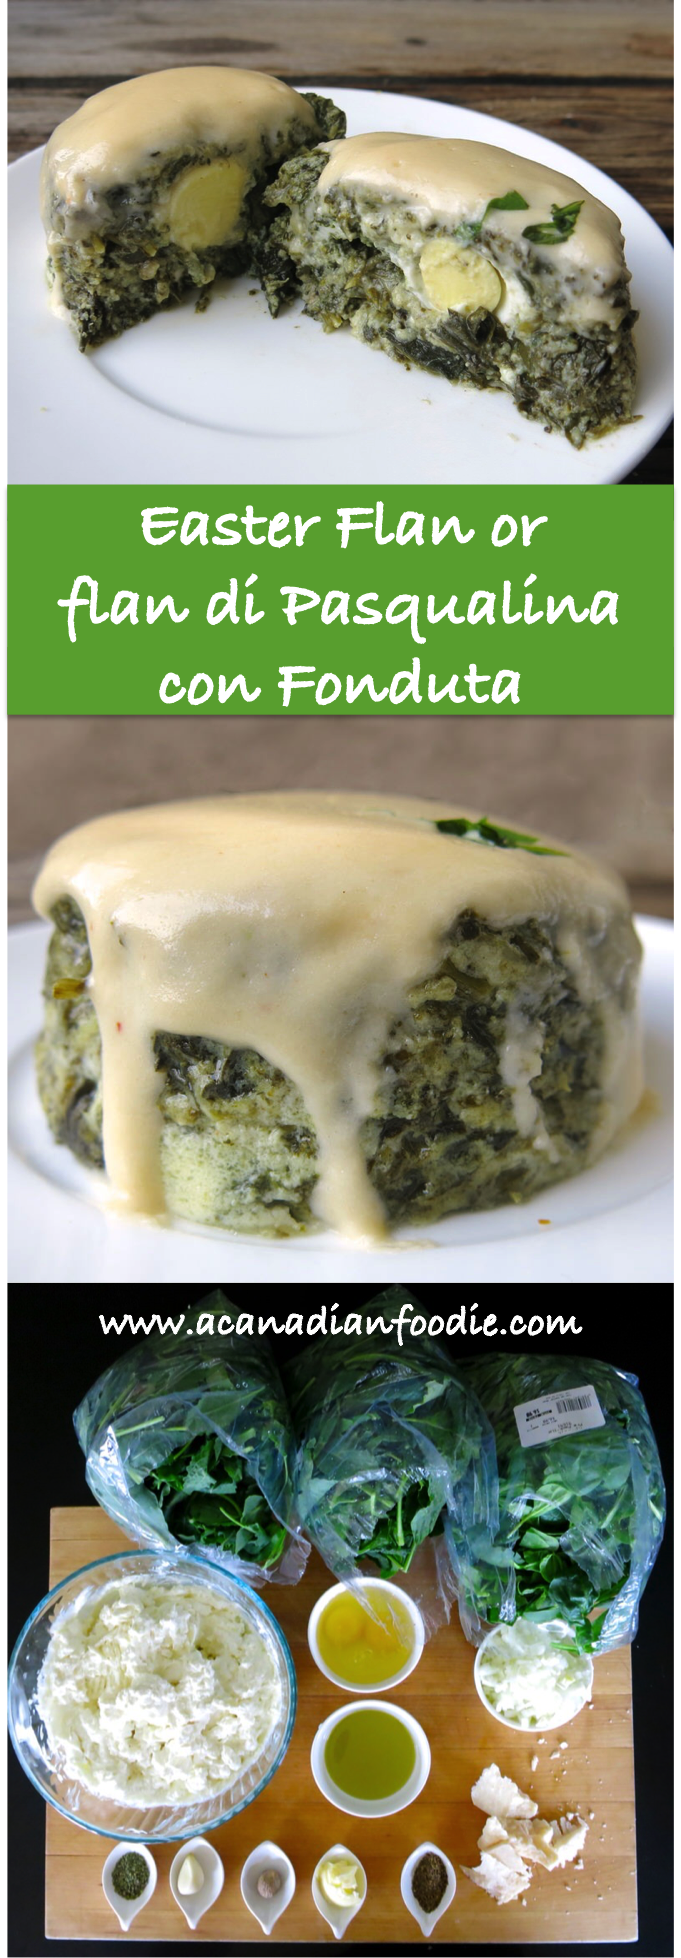 Pasqualina Flan with Fondu Saucefor Easter with Baby Kale, Spinach and Quail Eggs or flan di Pasqualina con Fonduta! A scrumptious celebration of Spring and the best place to hide your Easter Eggs! www.acanadianfoodie.com